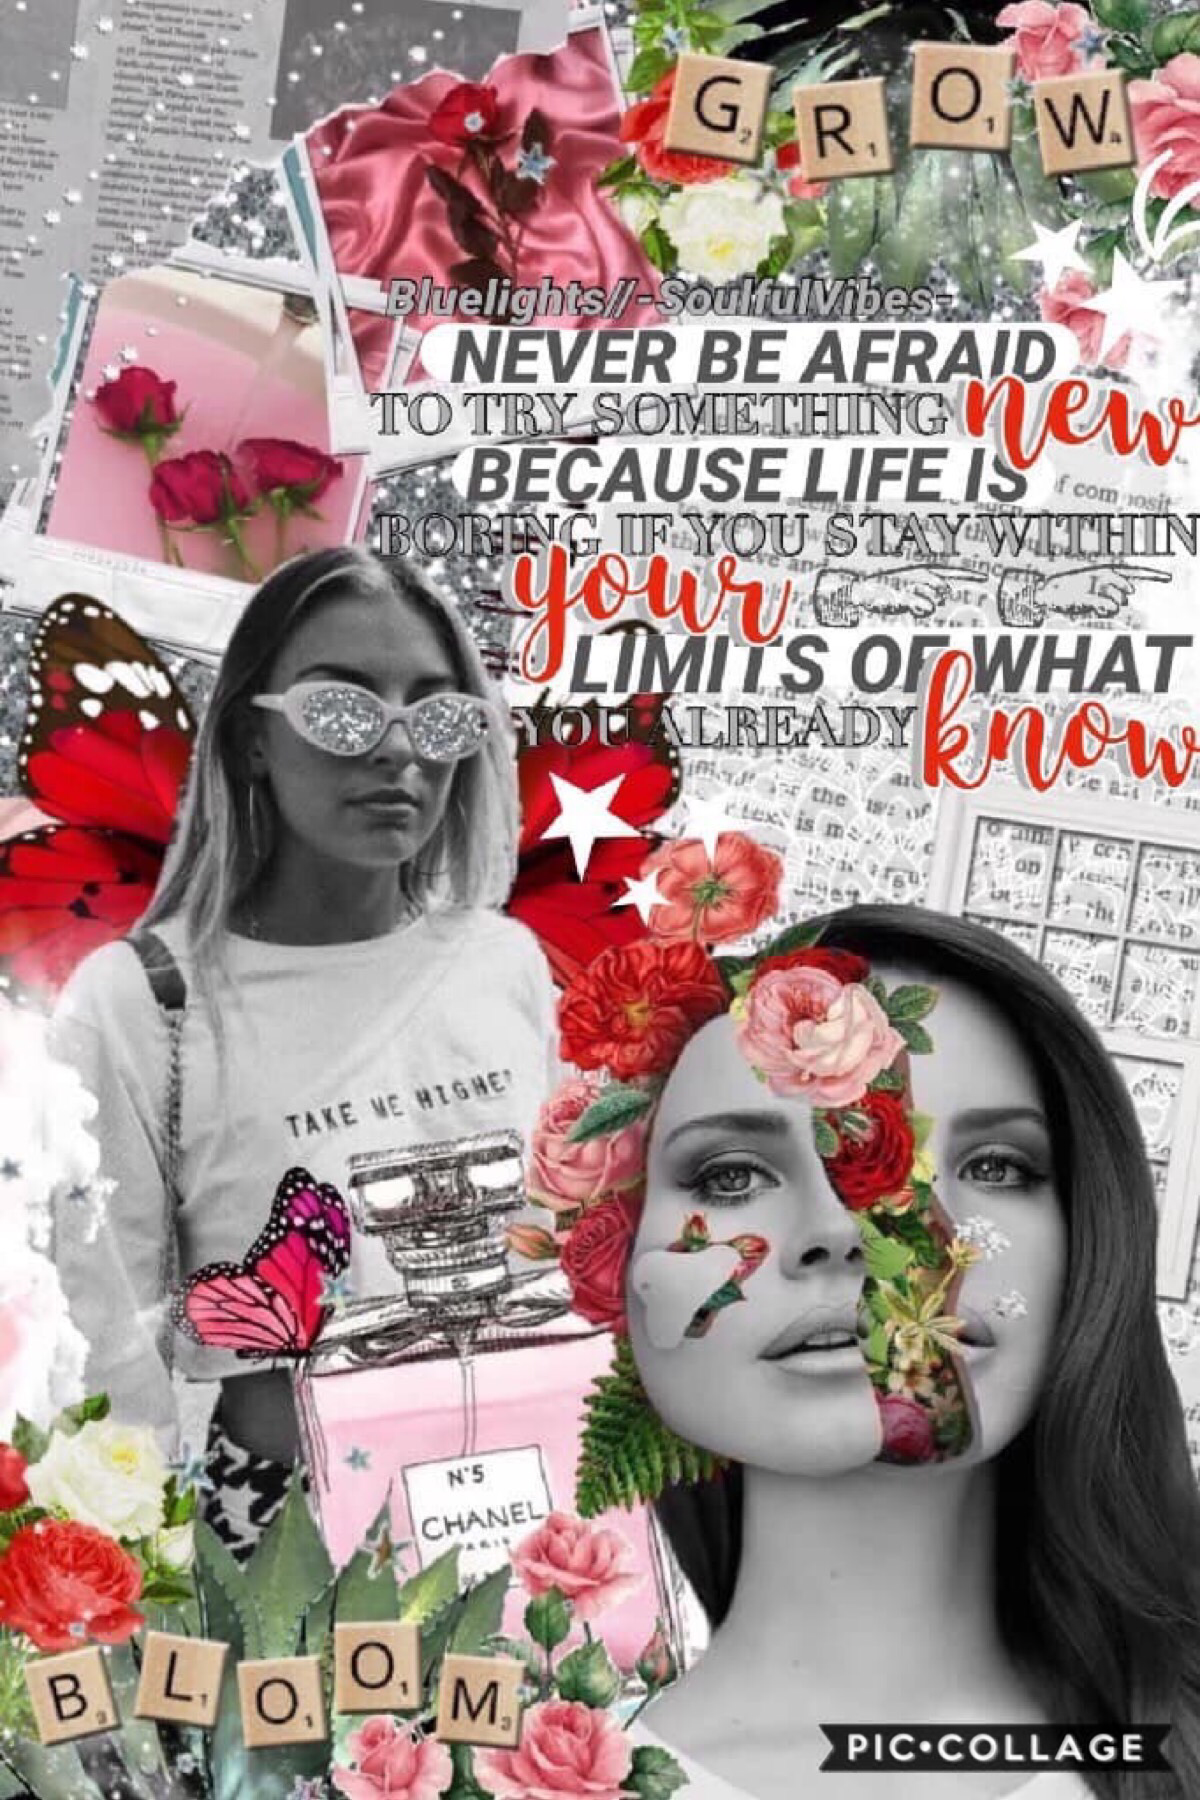 Collab with the ABSOLUTELY AMAZING -SoulfulVibes- she did the beautiful text and I did the background and pngs💗 Caption shoutouts: @xXStarDustXx @moonrohses @meandmeonly @sakuracat